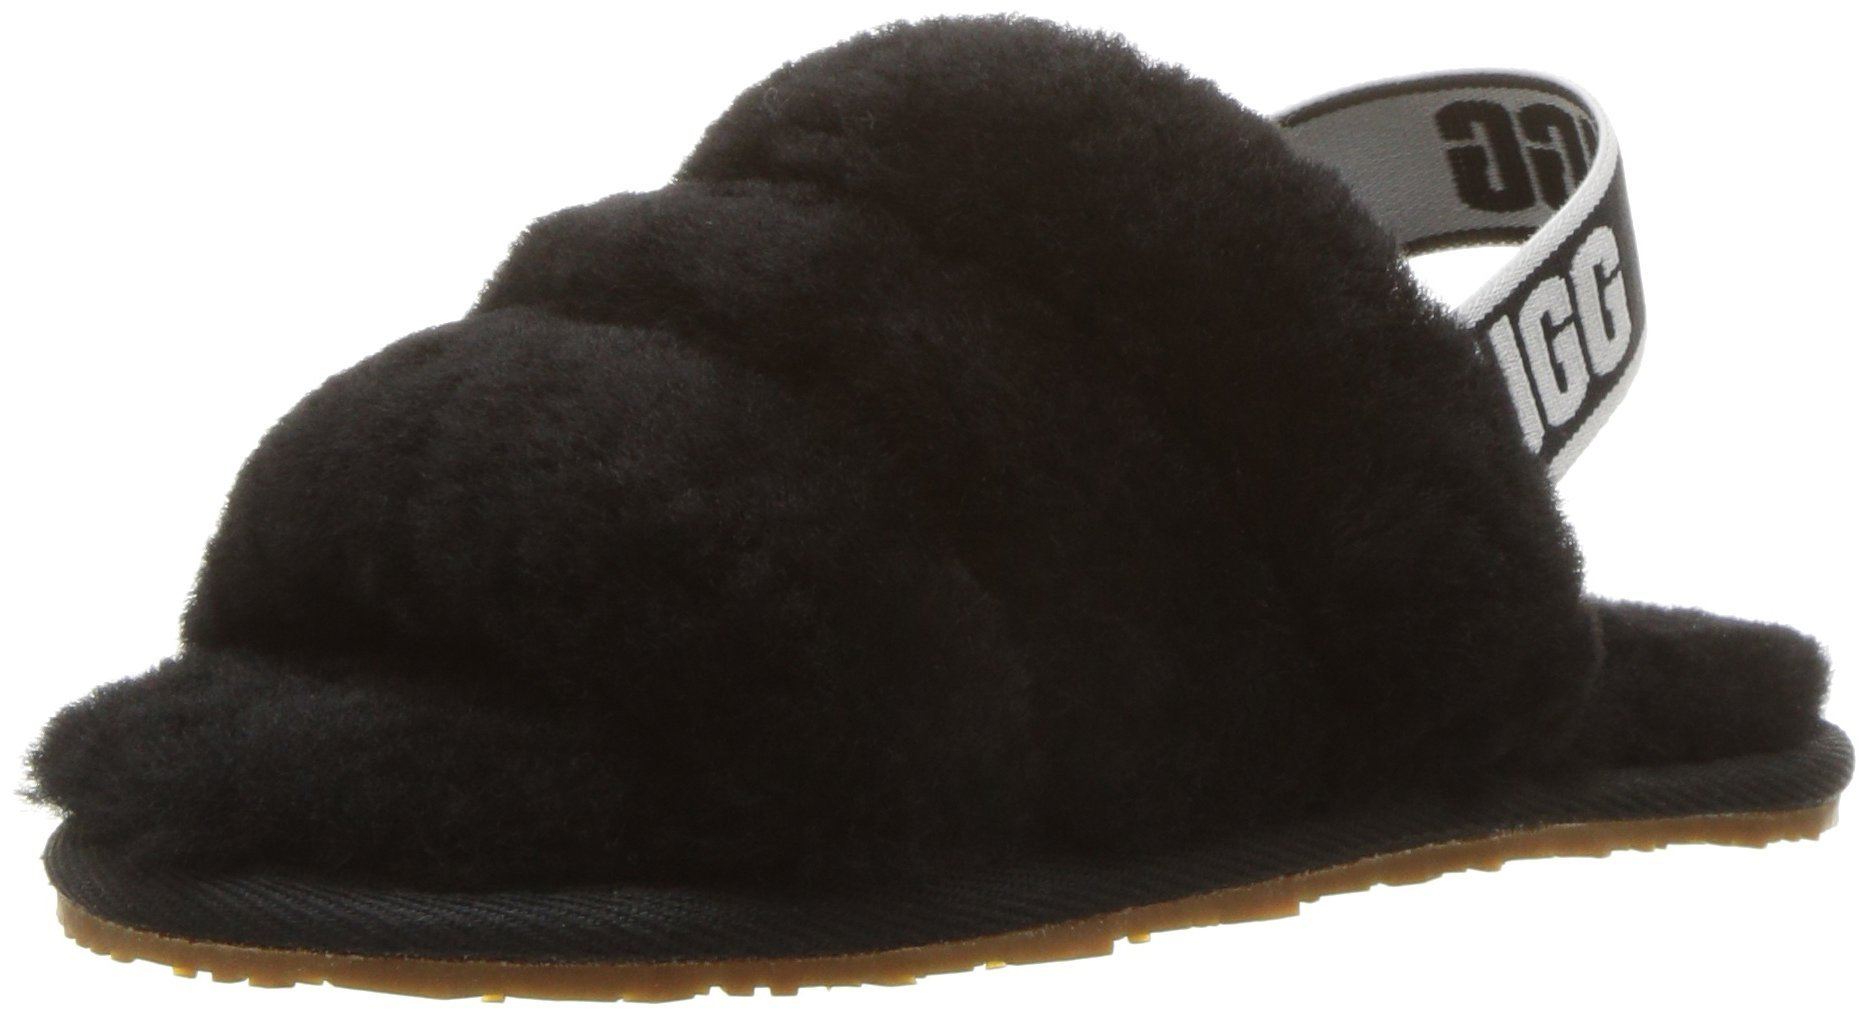 UGG Girls' T Fluff Yeah Slide Sandal, Black, 10 M US Toddler